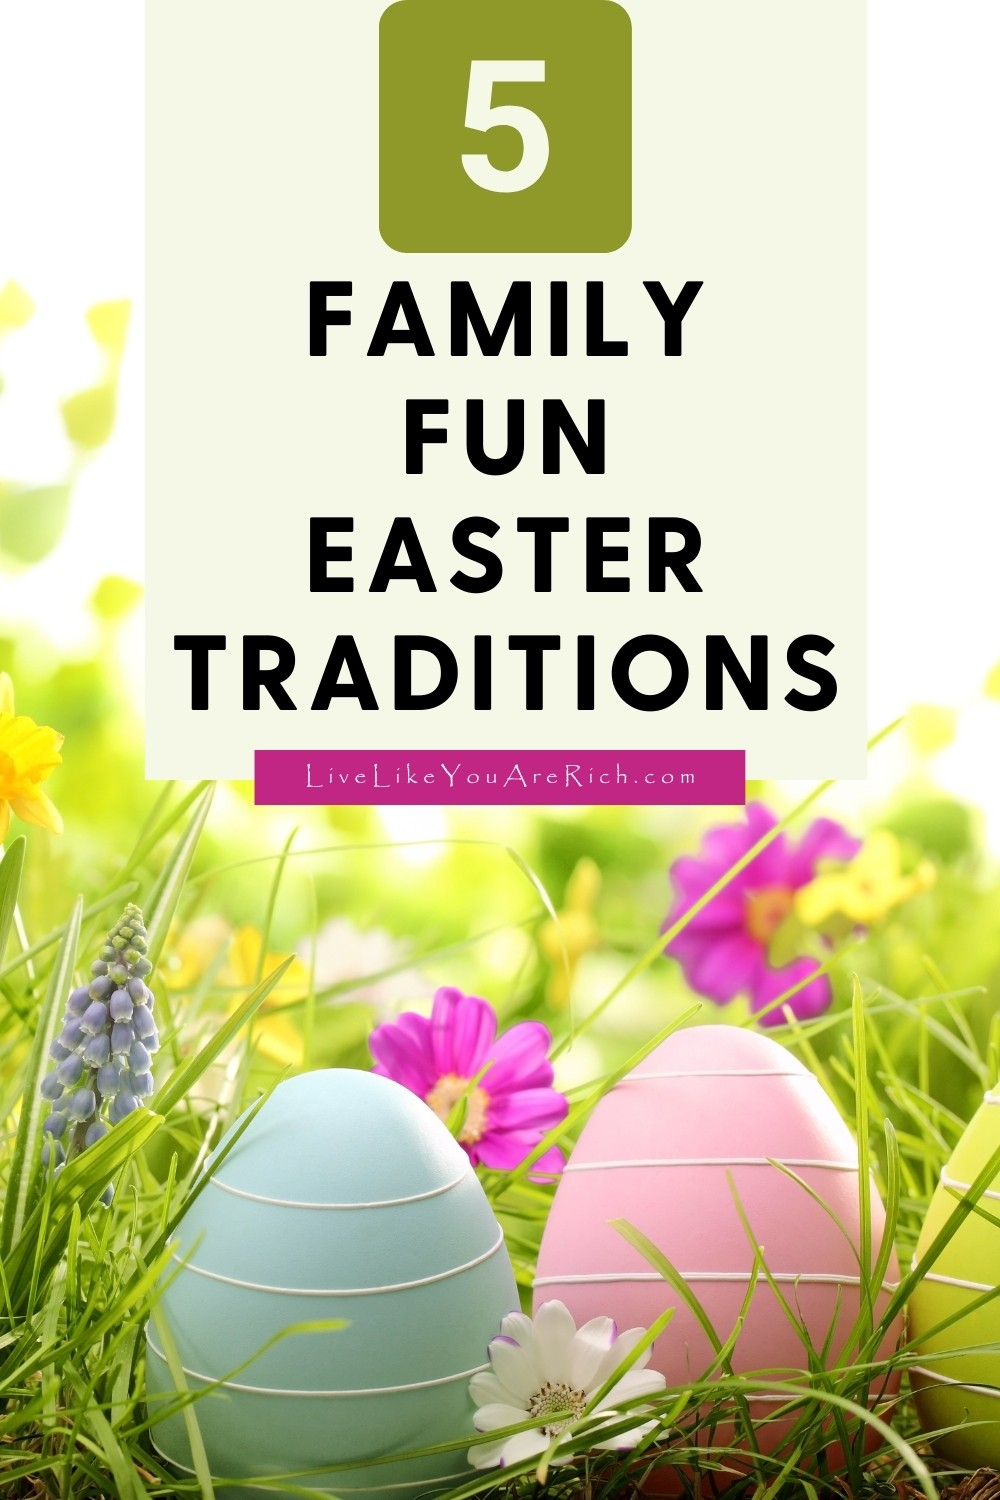 Easter is one of my favorite holidays. We always get together as a family and celebrate. Here are 5 Family Fun Easter traditions that I adore!